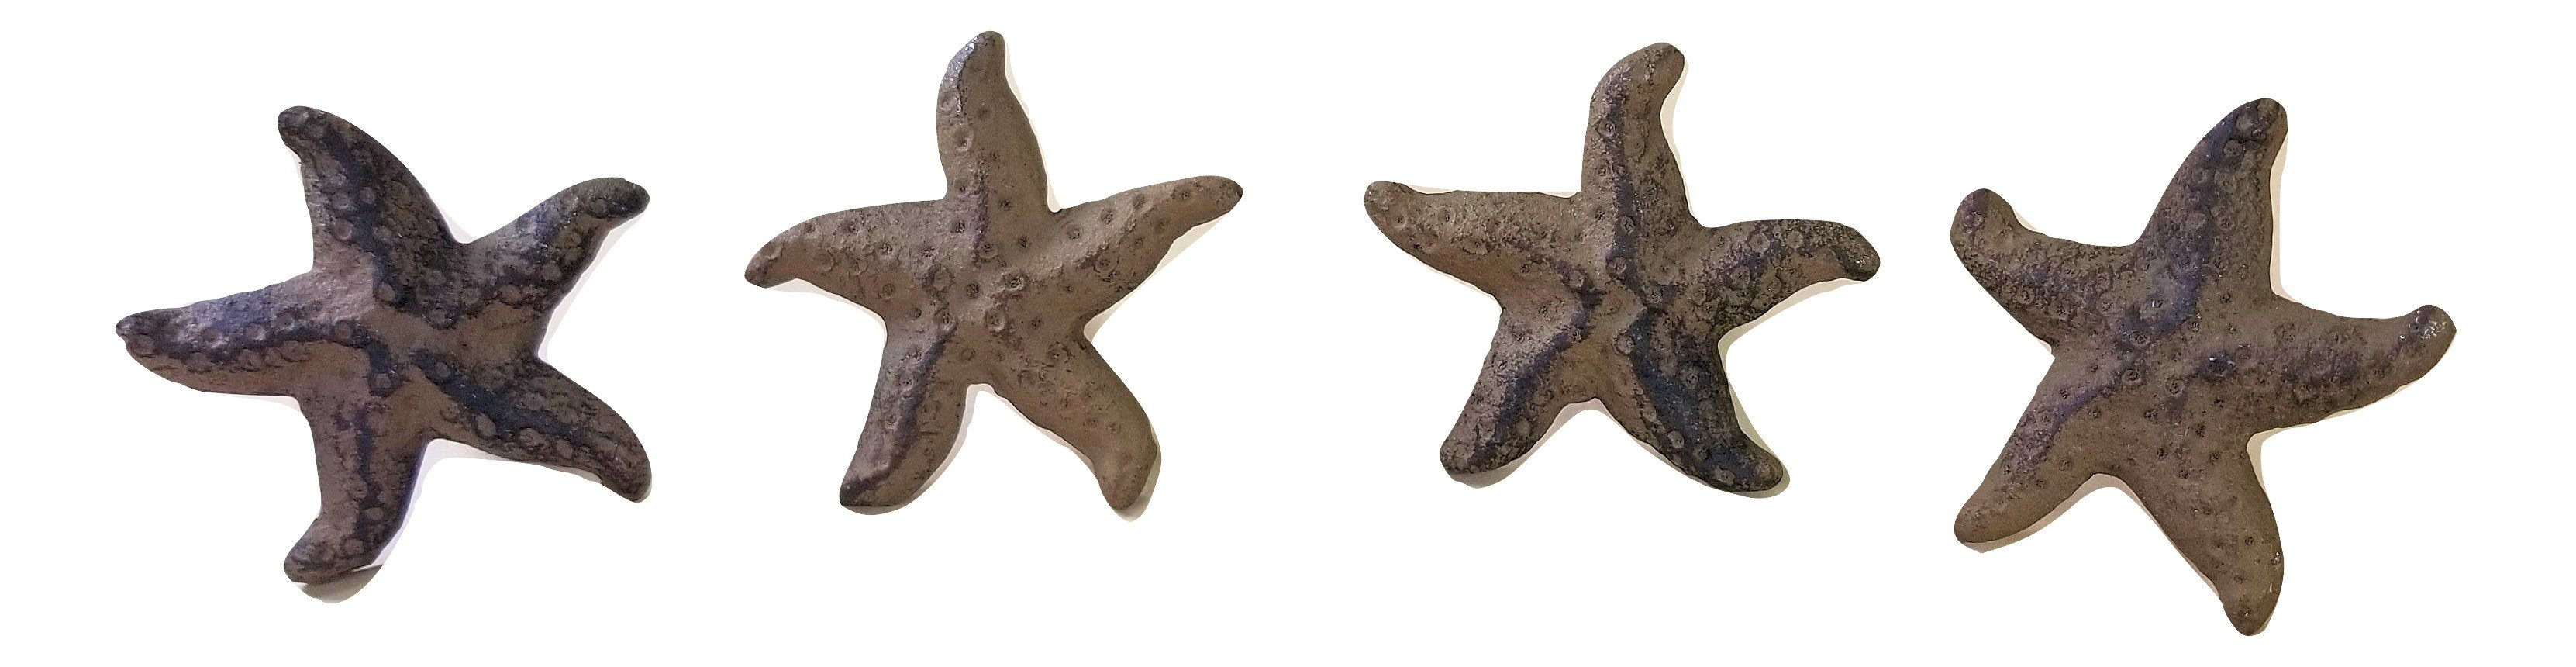 4 Cast Iron Starfish Knobs for Drawers or Cabinet Doors knob Carvers Olde Iron